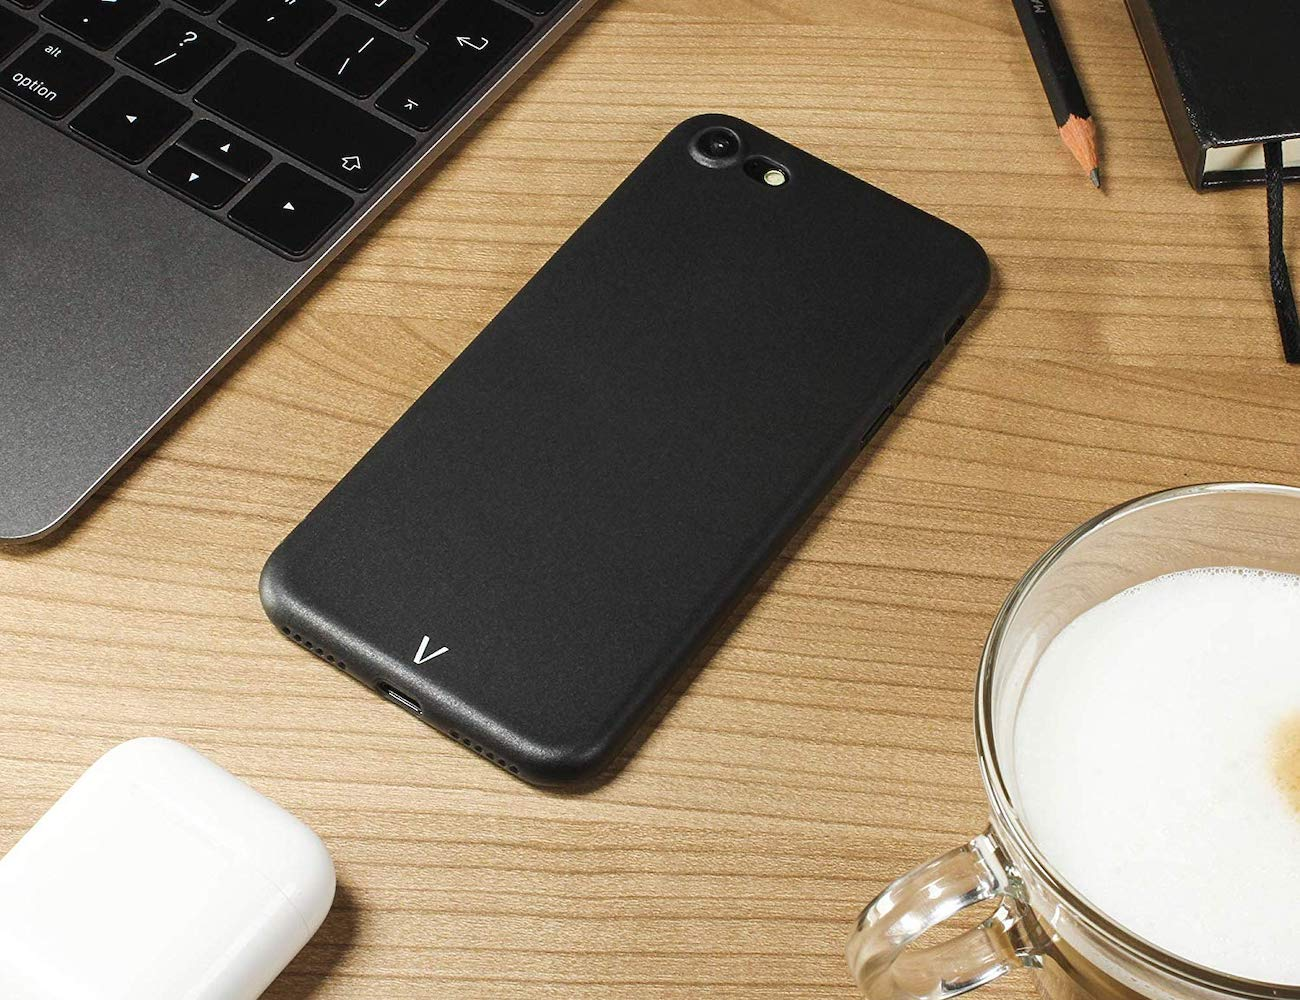 Vincoe UltraRaw Thin iPhone Case